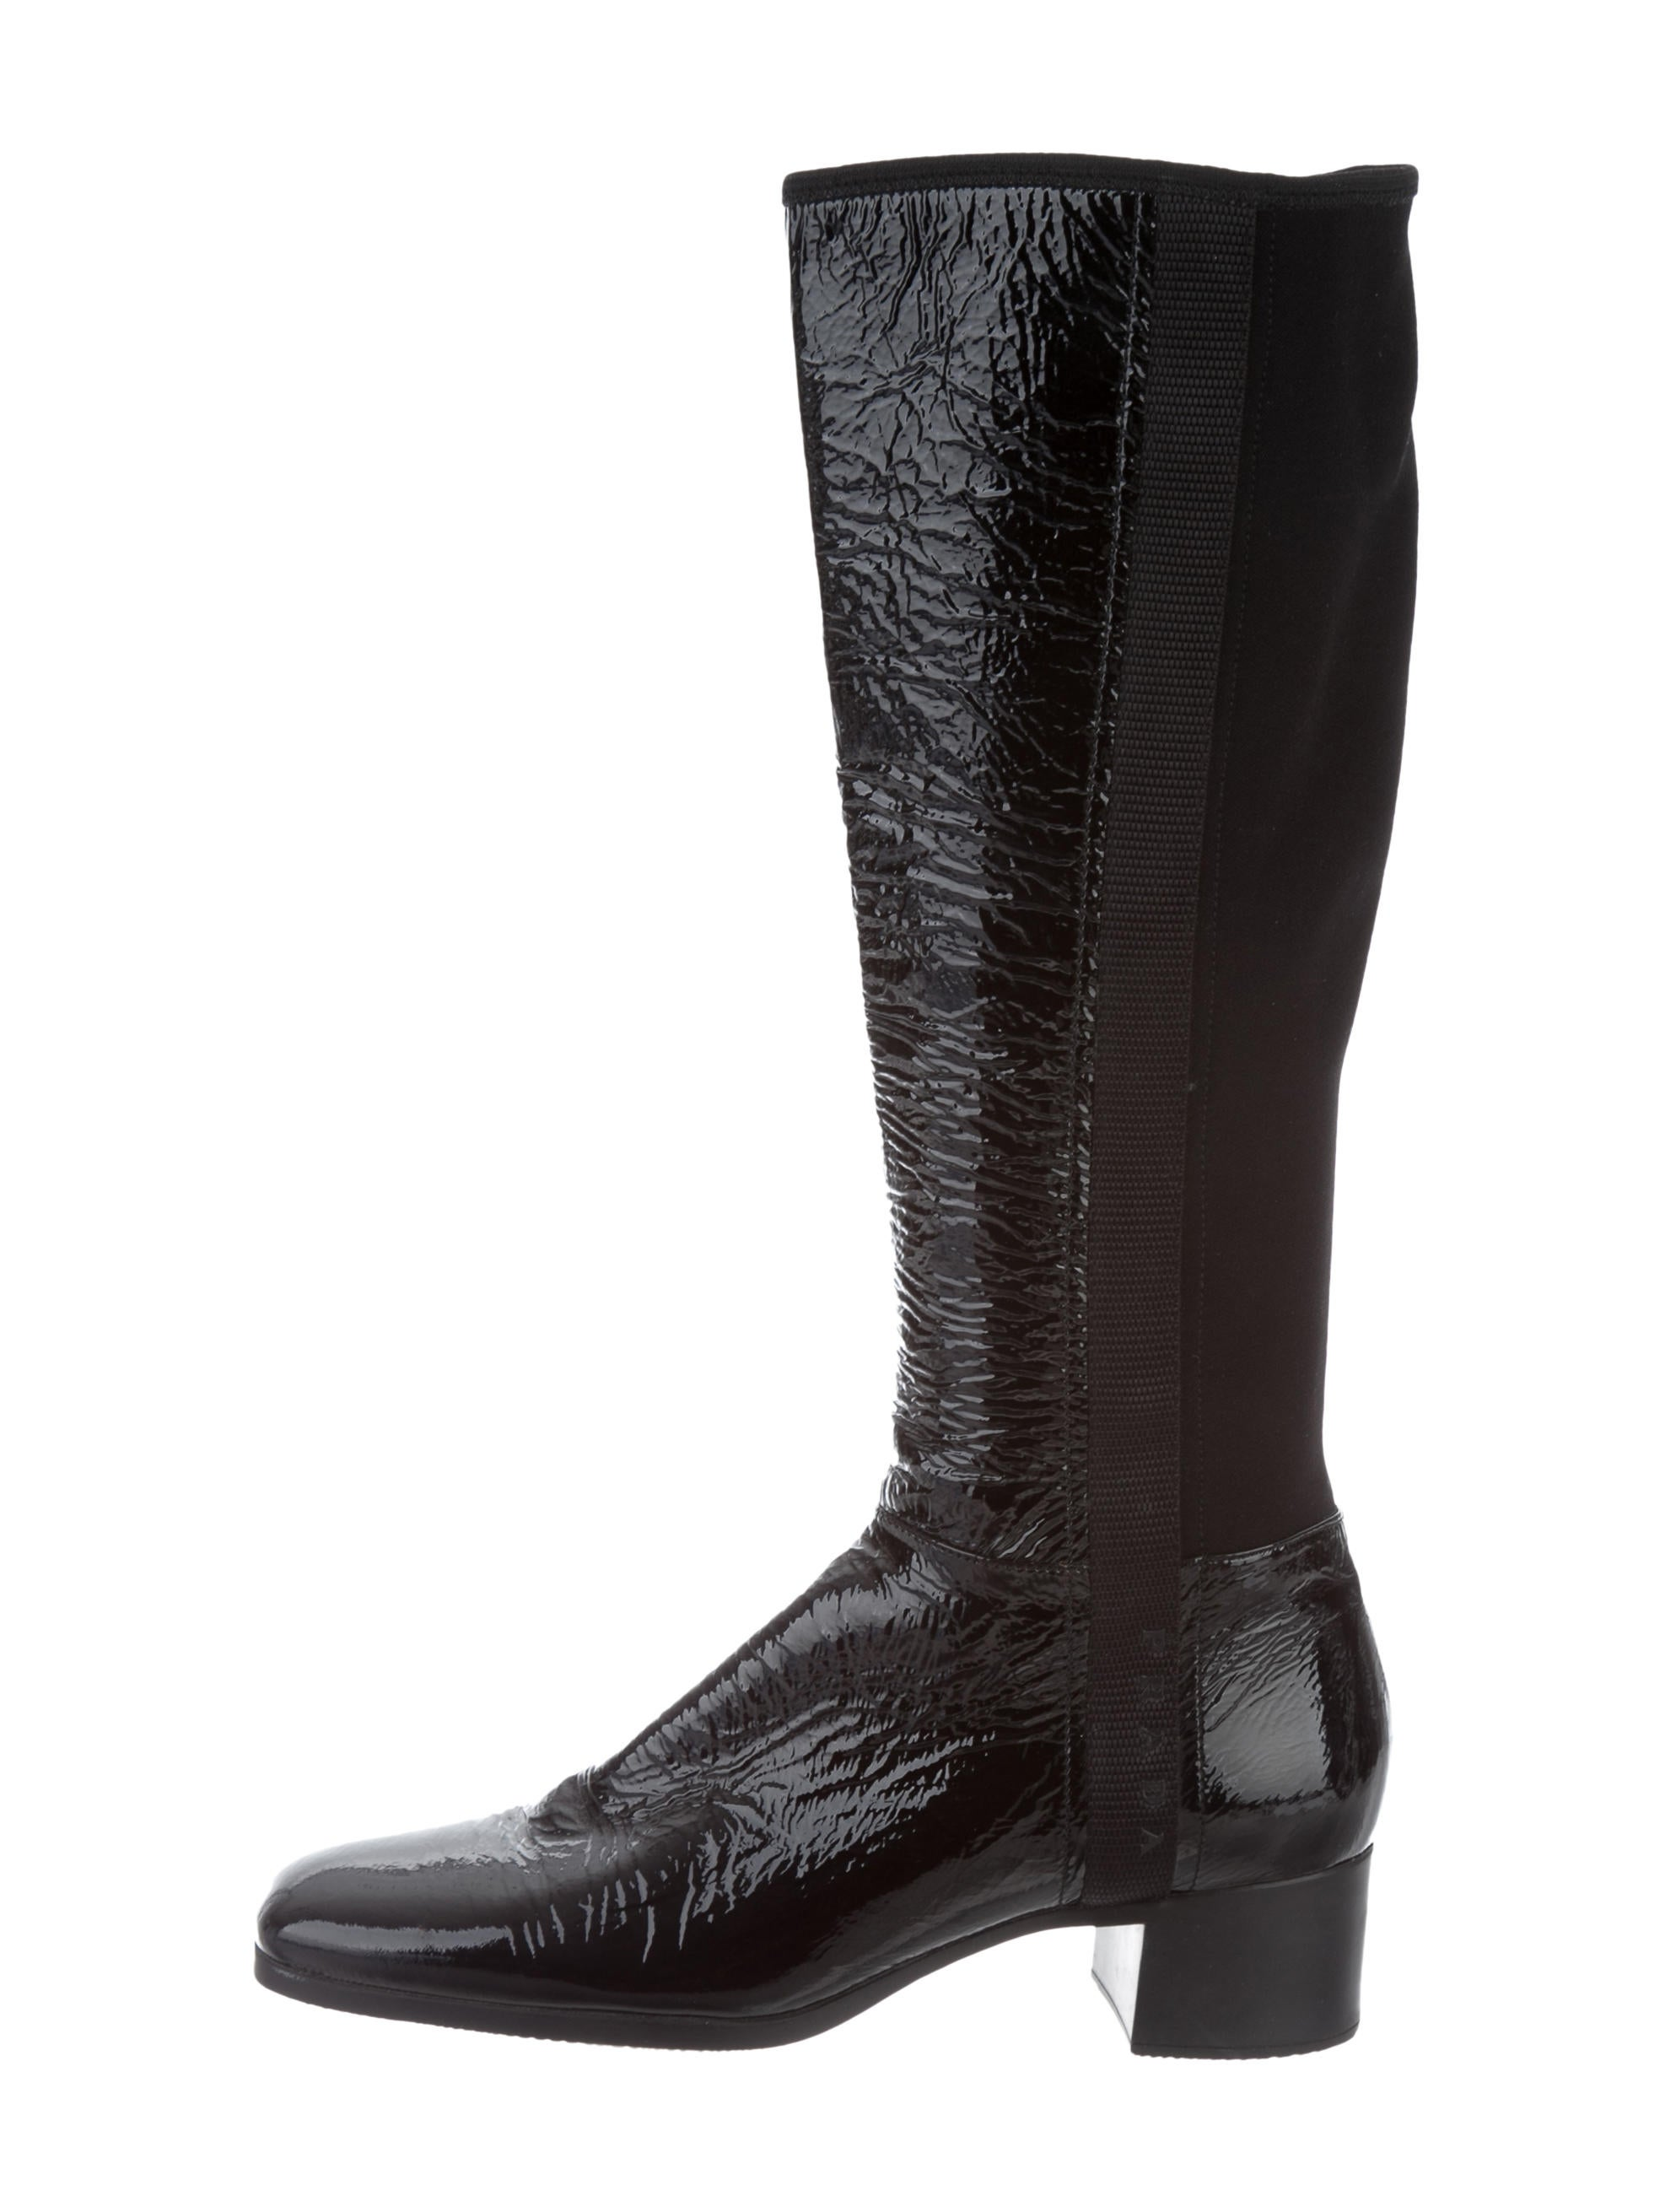 for sale wholesale price Prada Sport Patent Leather Square-Toe Boots free shipping release dates cheap sale for nice amazon cheap online 8pDu59O6